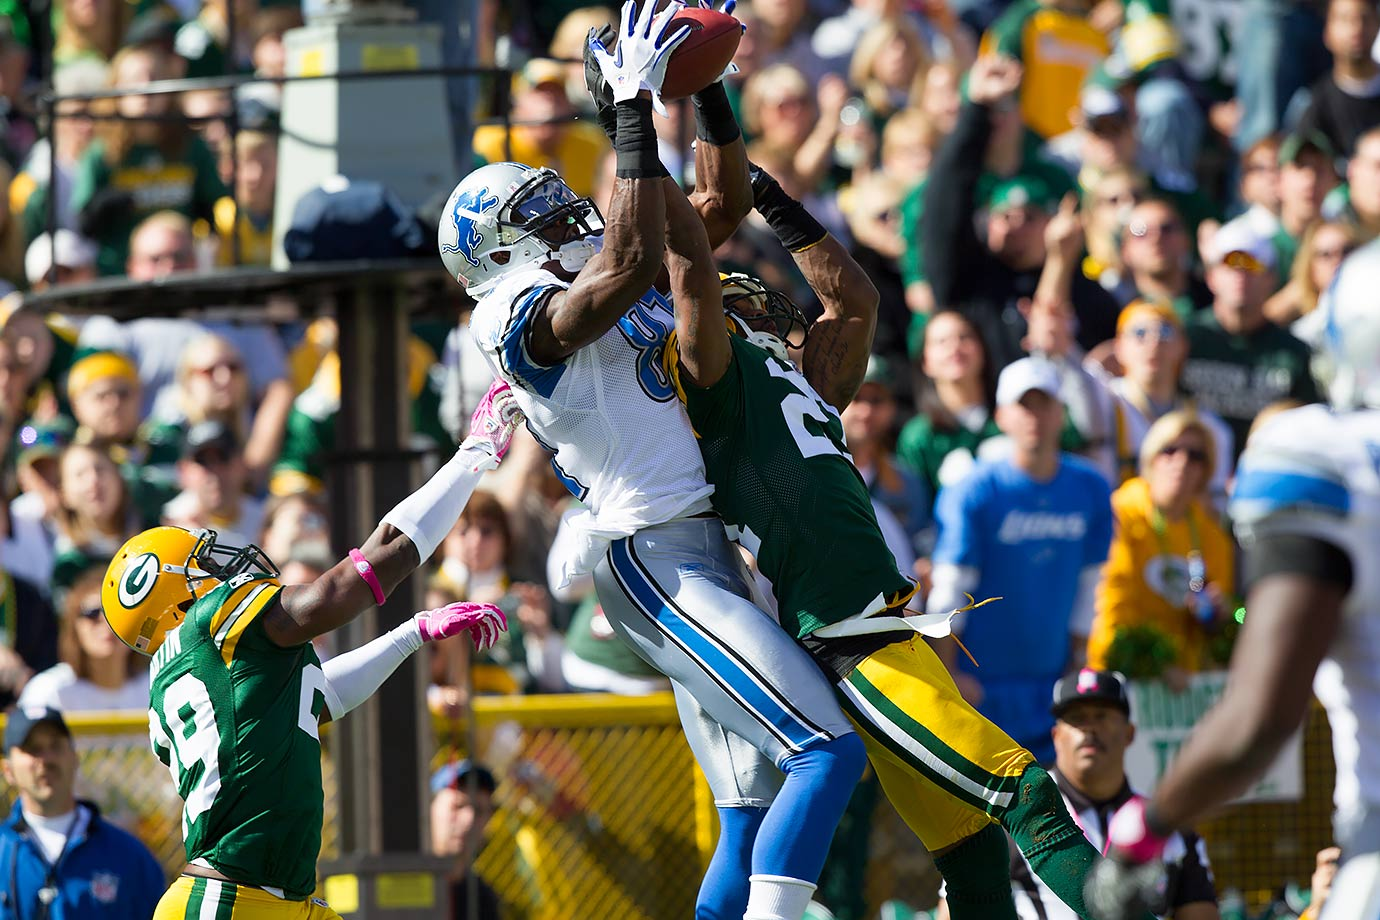 Oct. 3, 2010 — Detroit Lions vs. Green Bay Packers